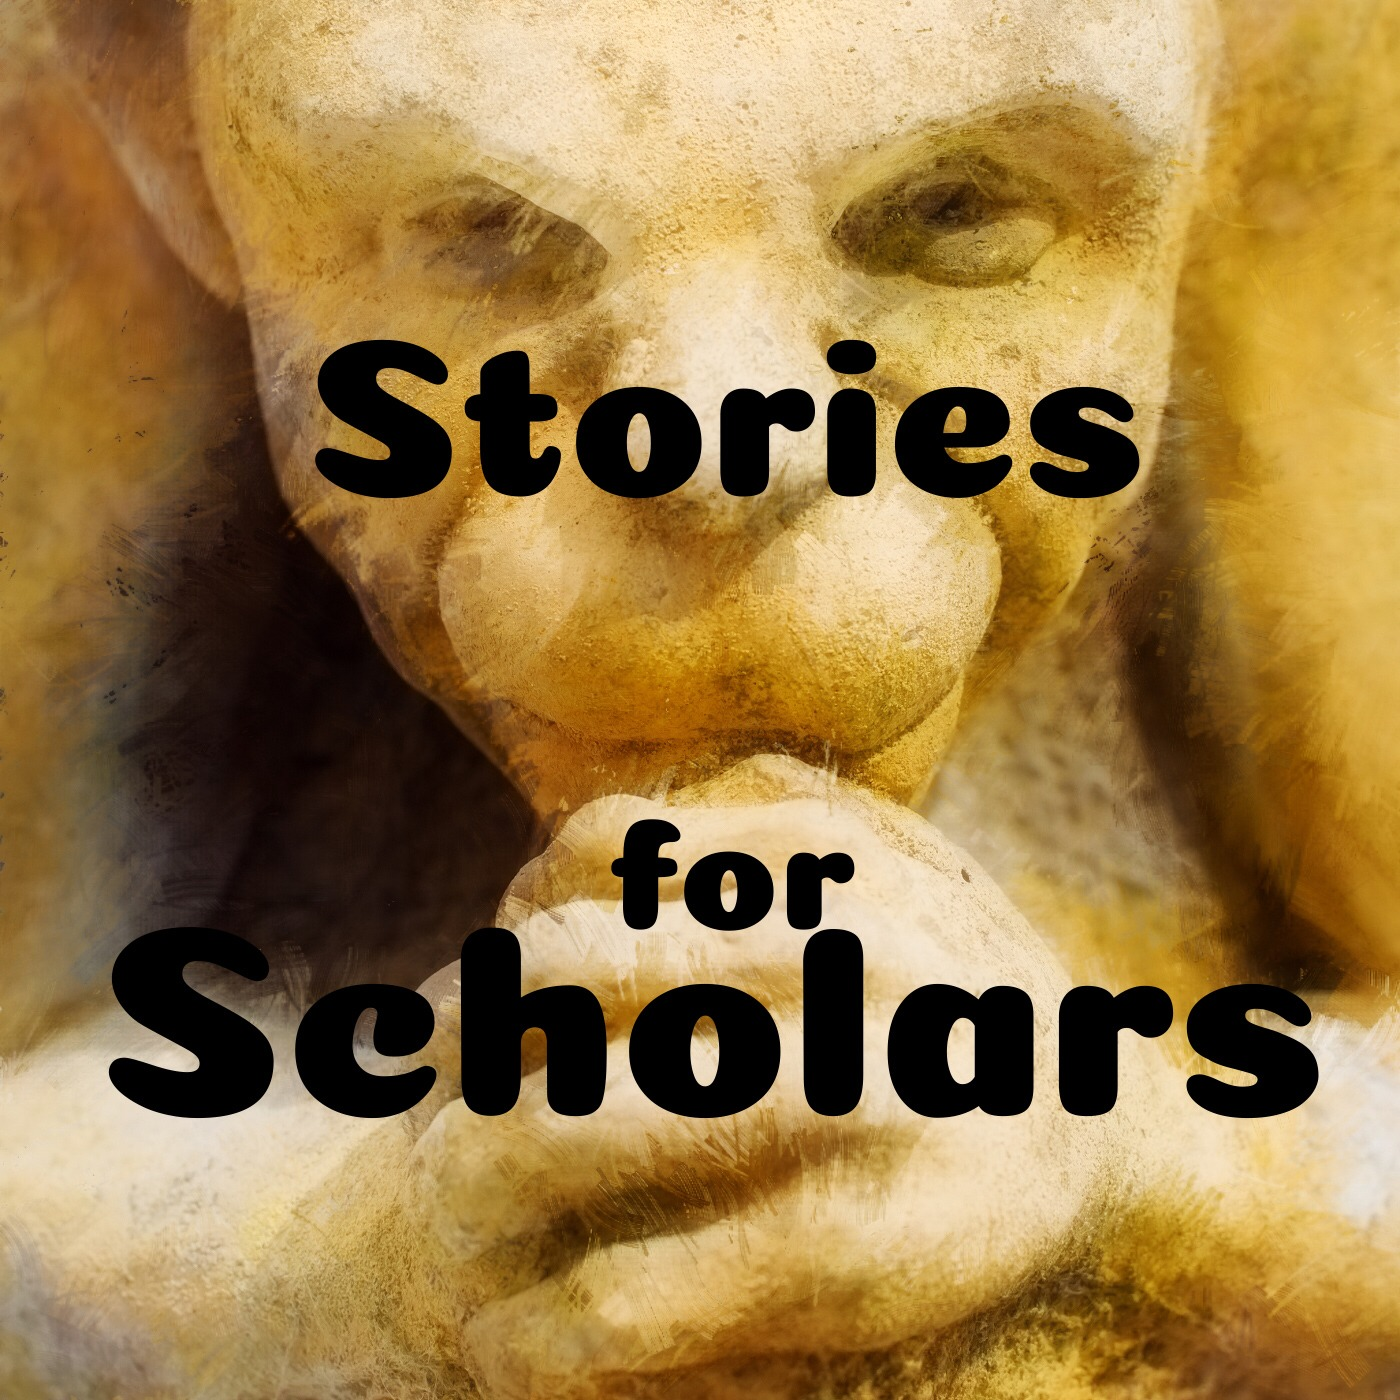 Stories for Scholars Ep. 1 - White Hare, Vol. I